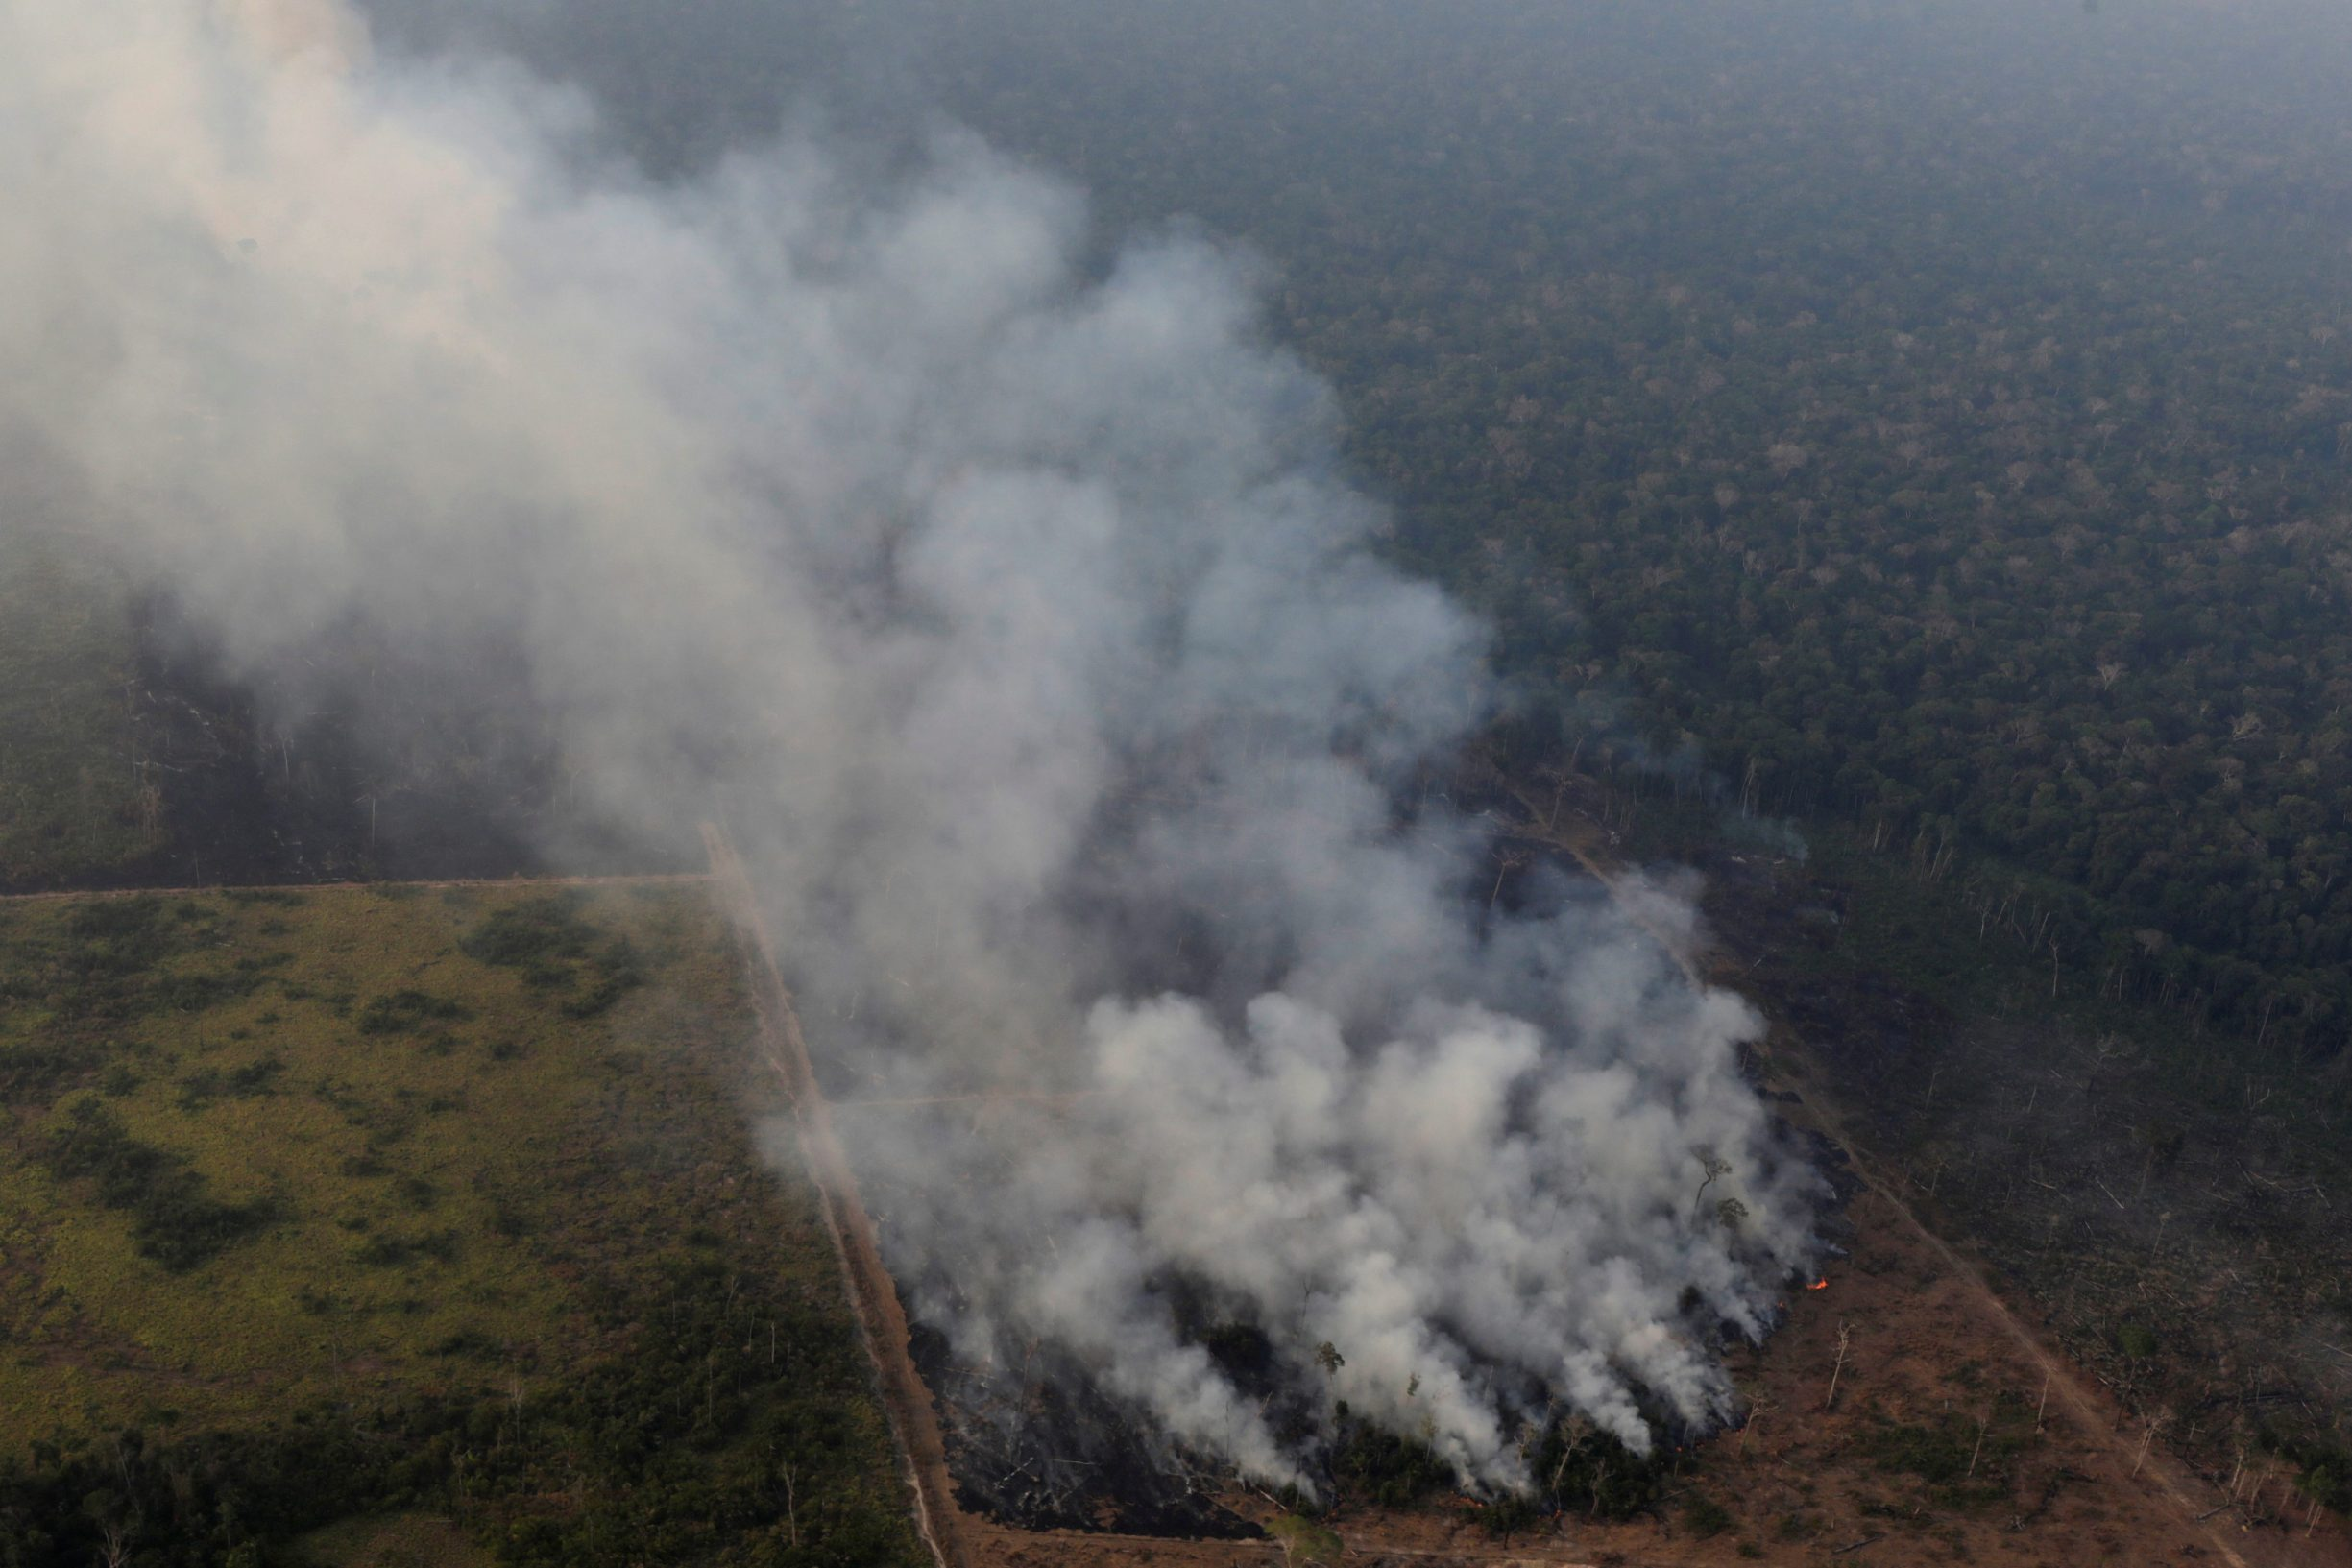 Smoke billows during a fire in an area of the Amazon rainforest near Porto Velho, Rondonia State, Brazil, Brazil August 21, 2019. REUTERS/Ueslei Marcelino